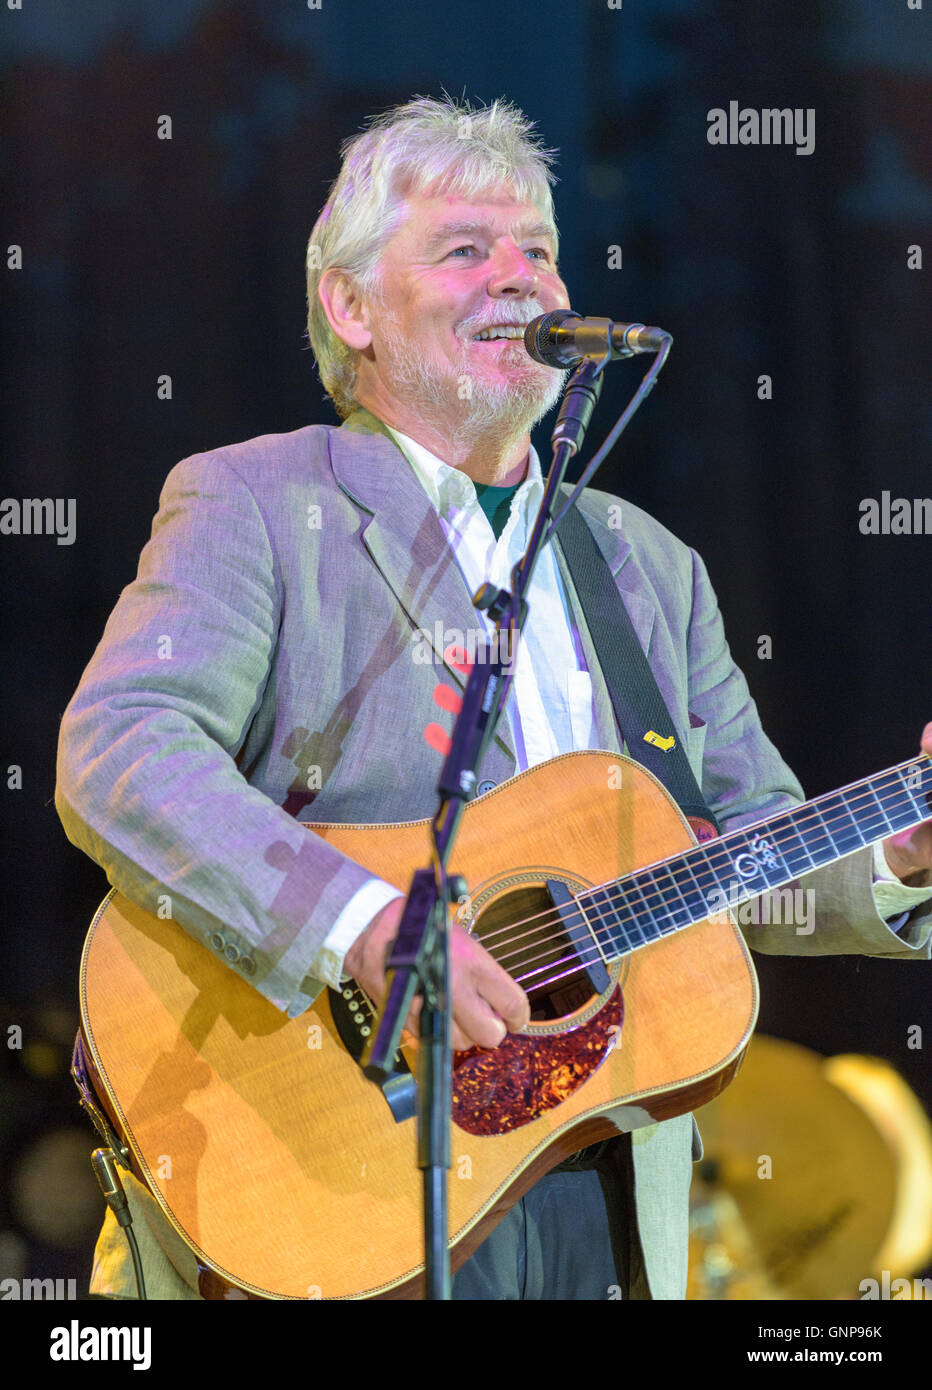 Simon Nicol of Fairport Convention performing at Fairport's Cropredy Convention, Banbury, England, UK. August - Stock Image